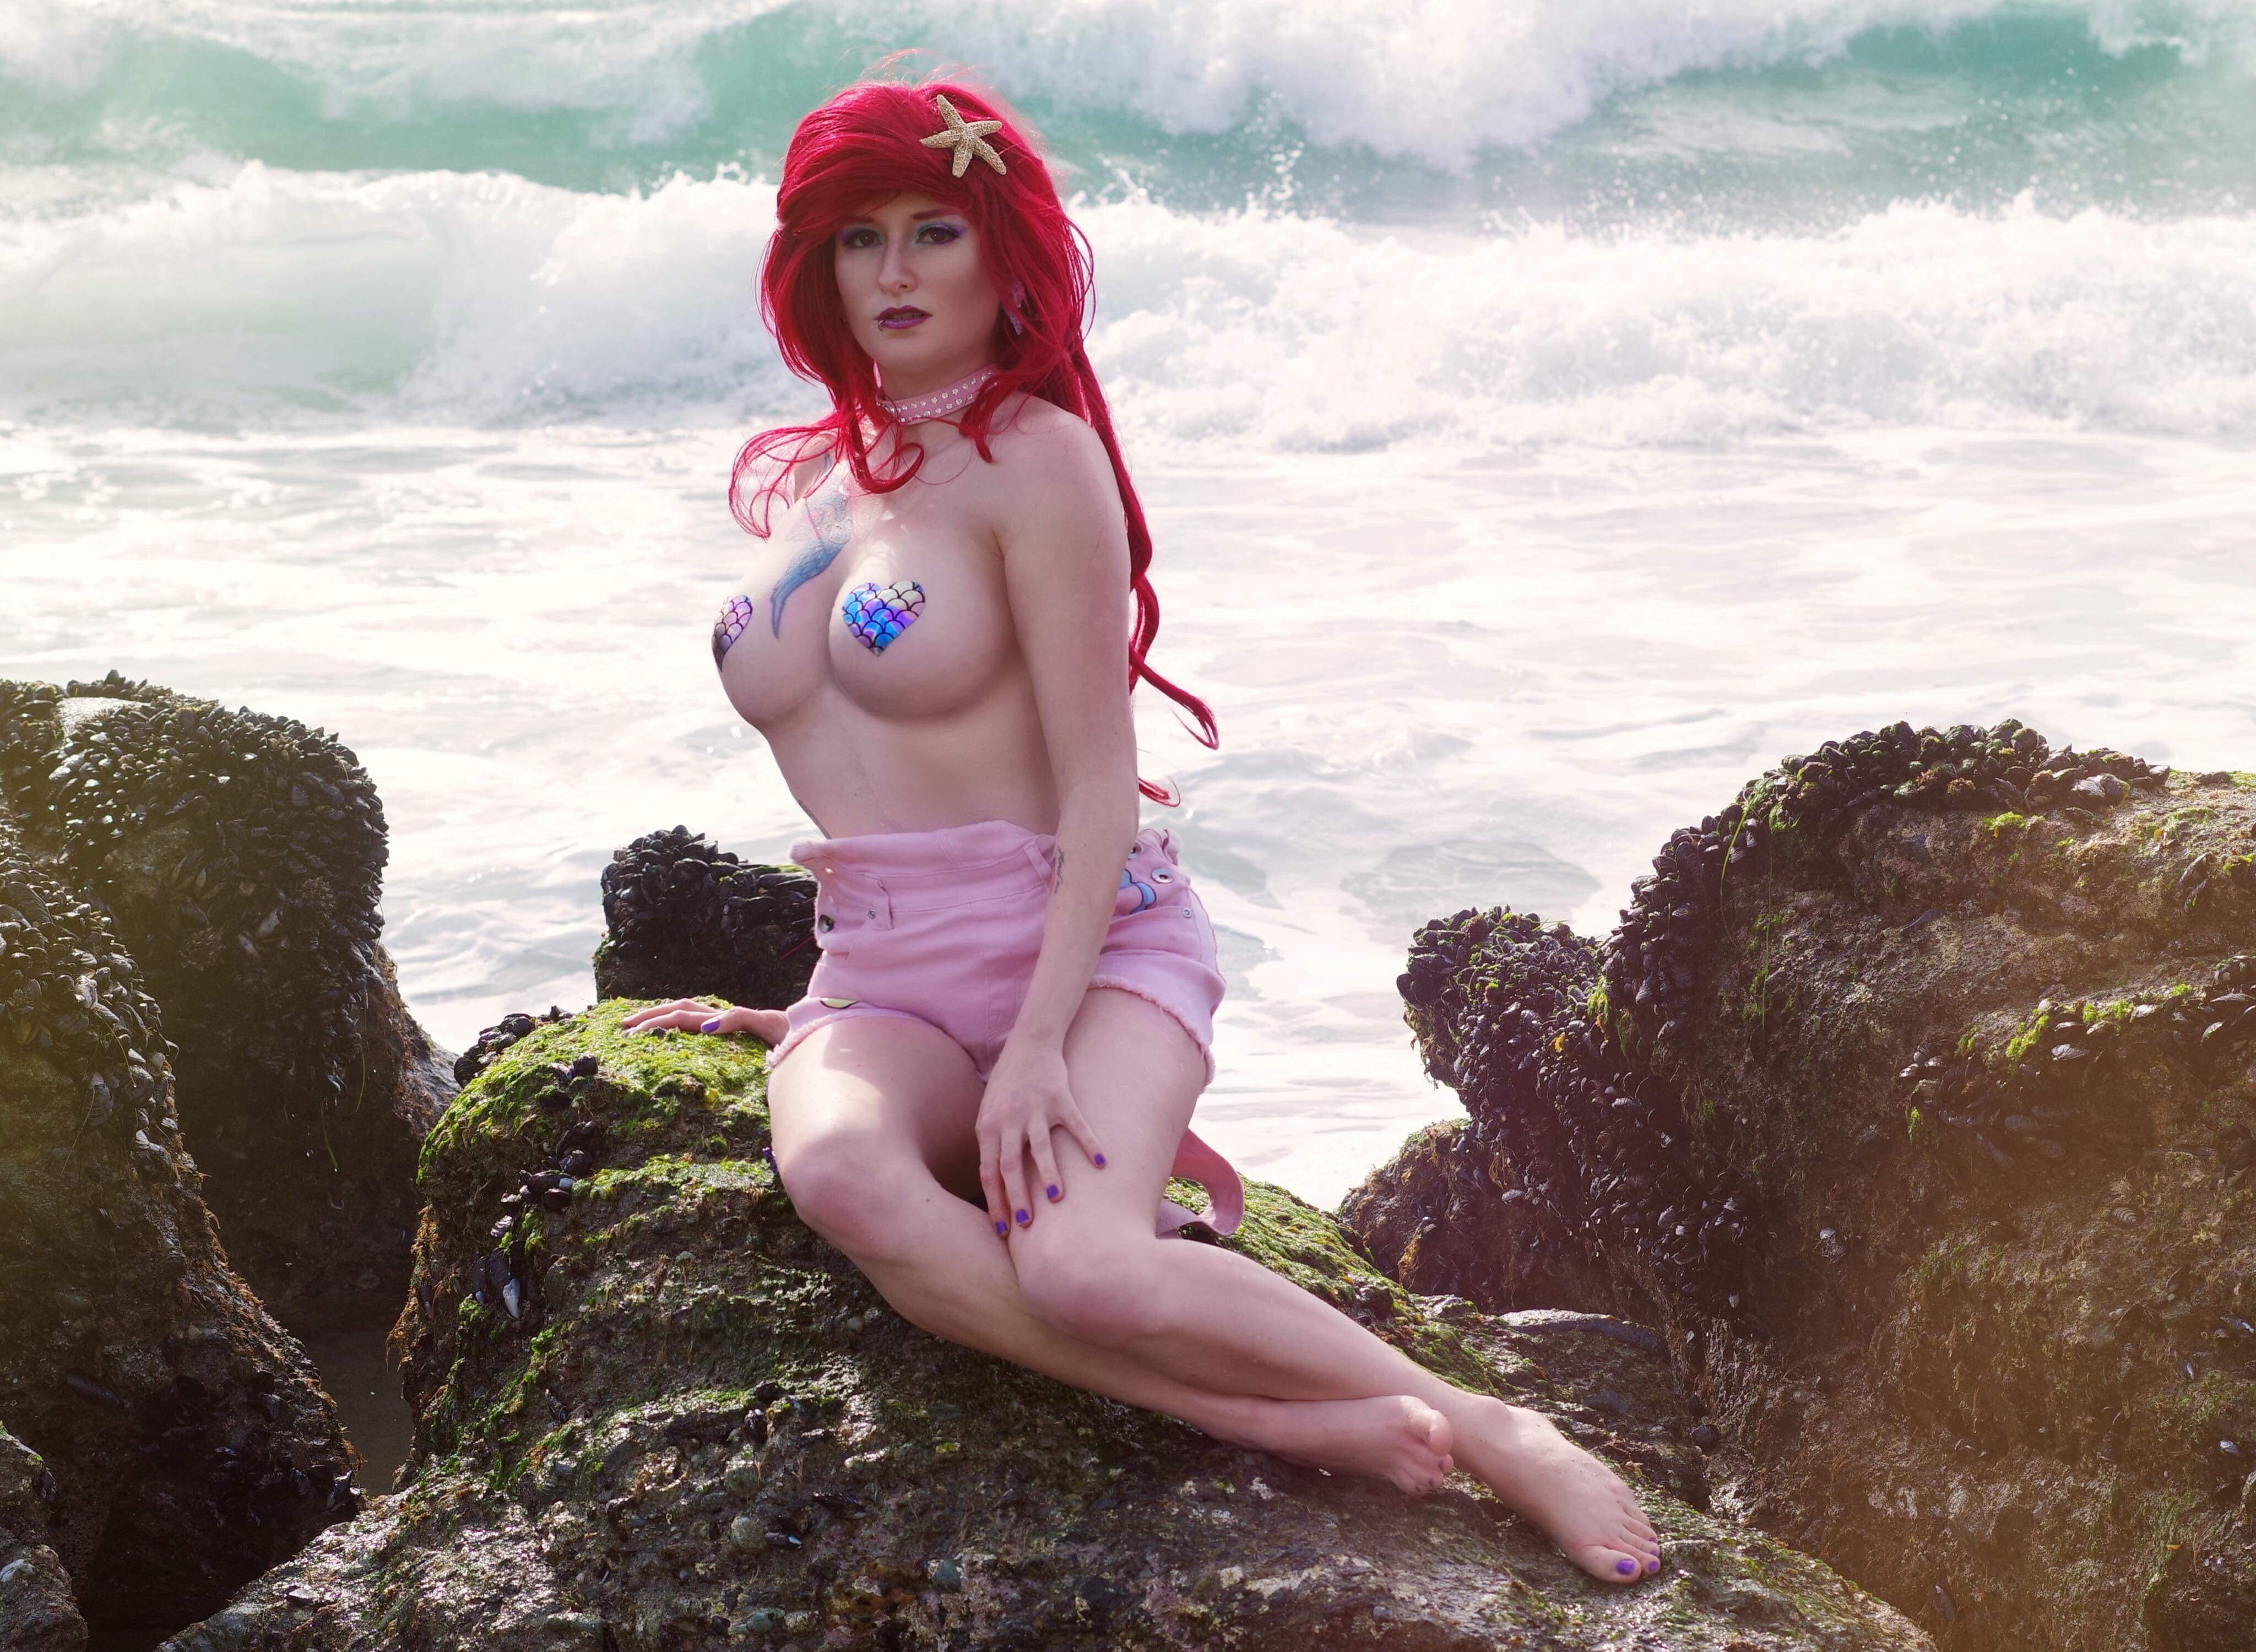 Ariel From The Little Mermaid – I Took This Picture At Laguna Beach In California